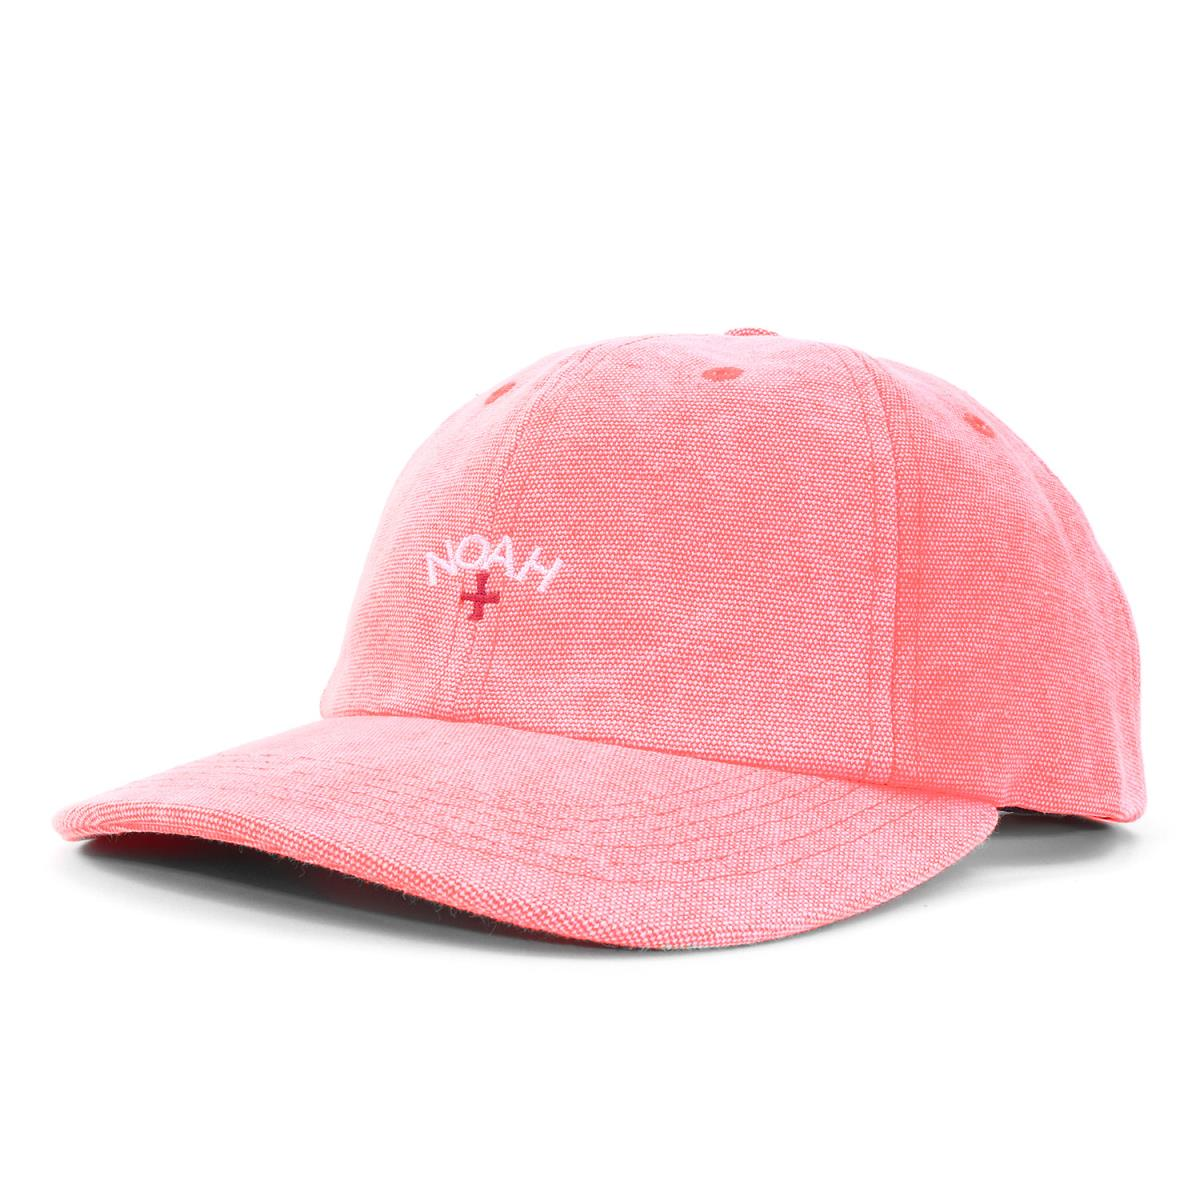 NOAH (Noah) brand logo embroidery 6 panel cap (Canvas 6 Panel Cap) Coral 0175cbf9bb3